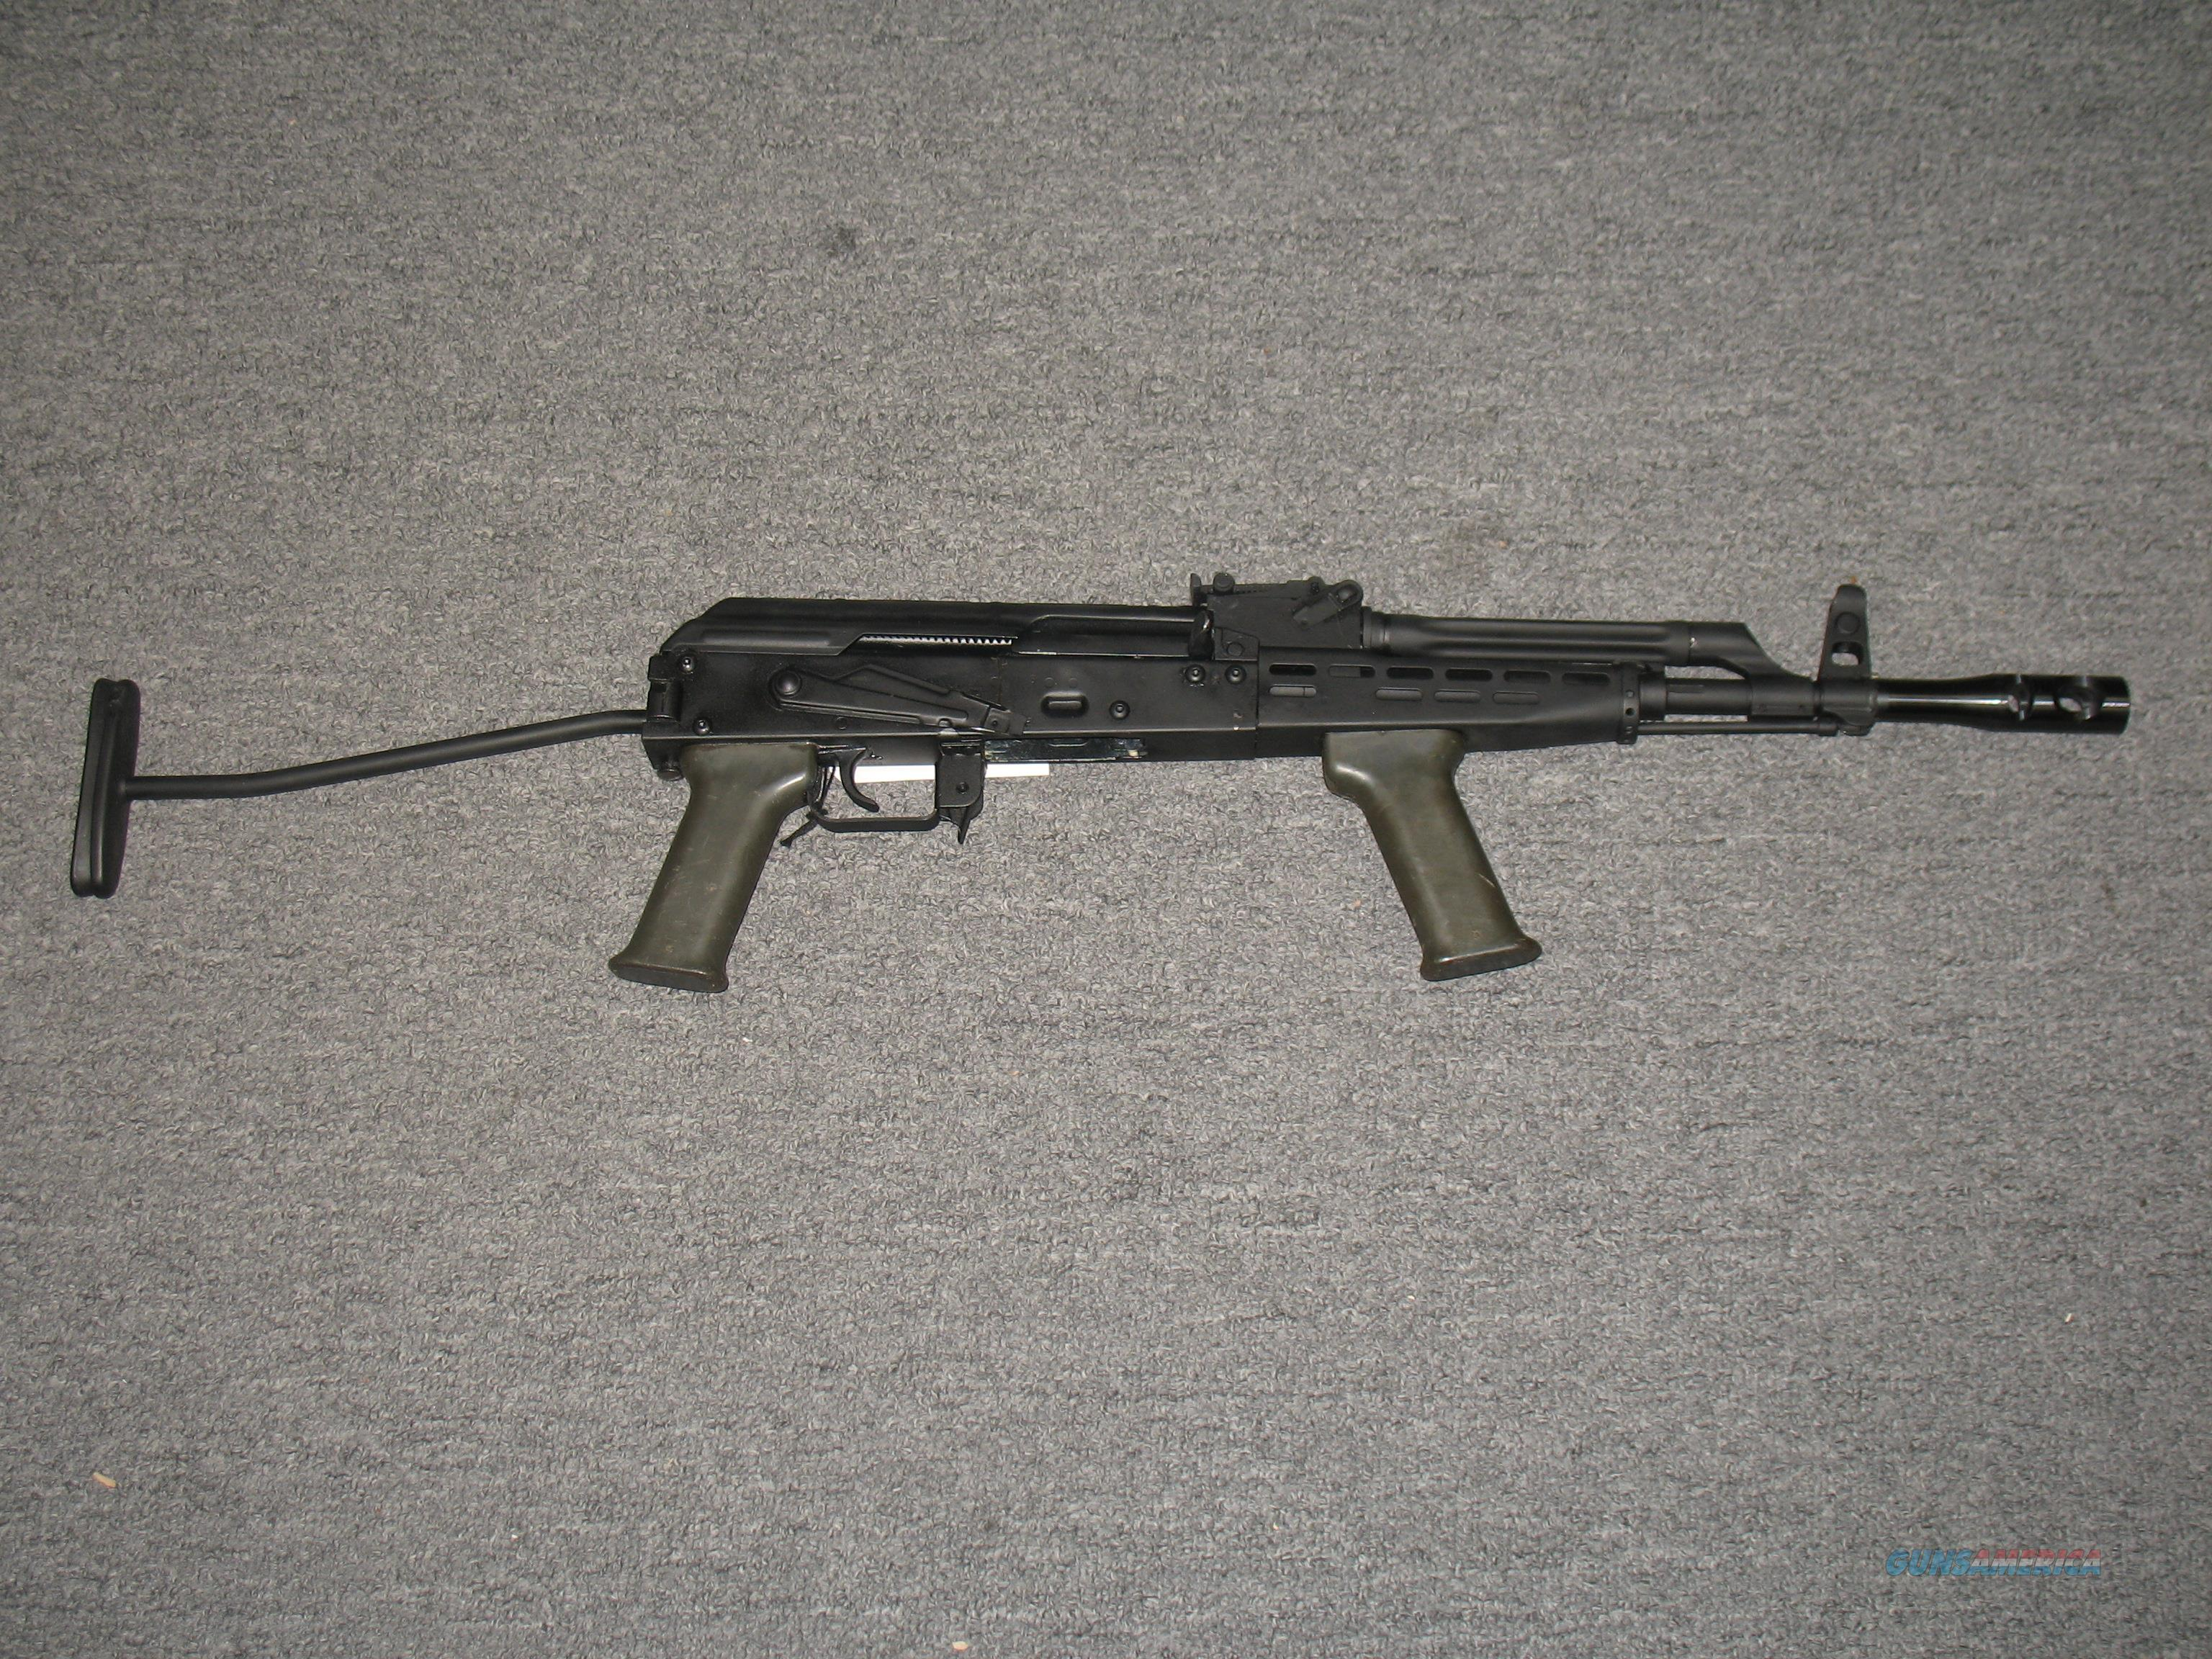 ITM Arms Co. MK99 7.62x39 for sale